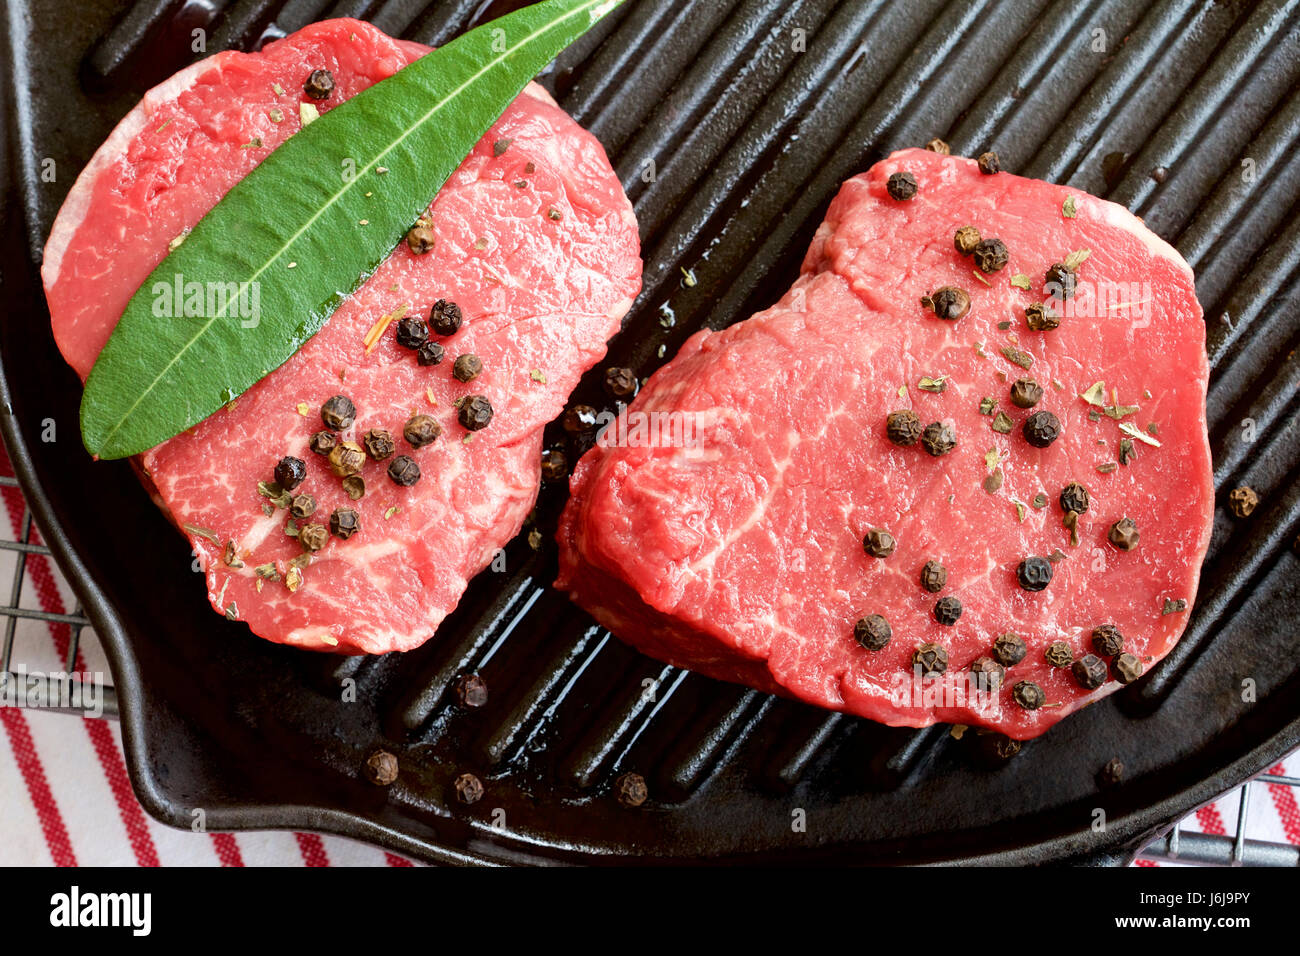 Raw beef eye fillet steak and peppercorns. - Stock Image